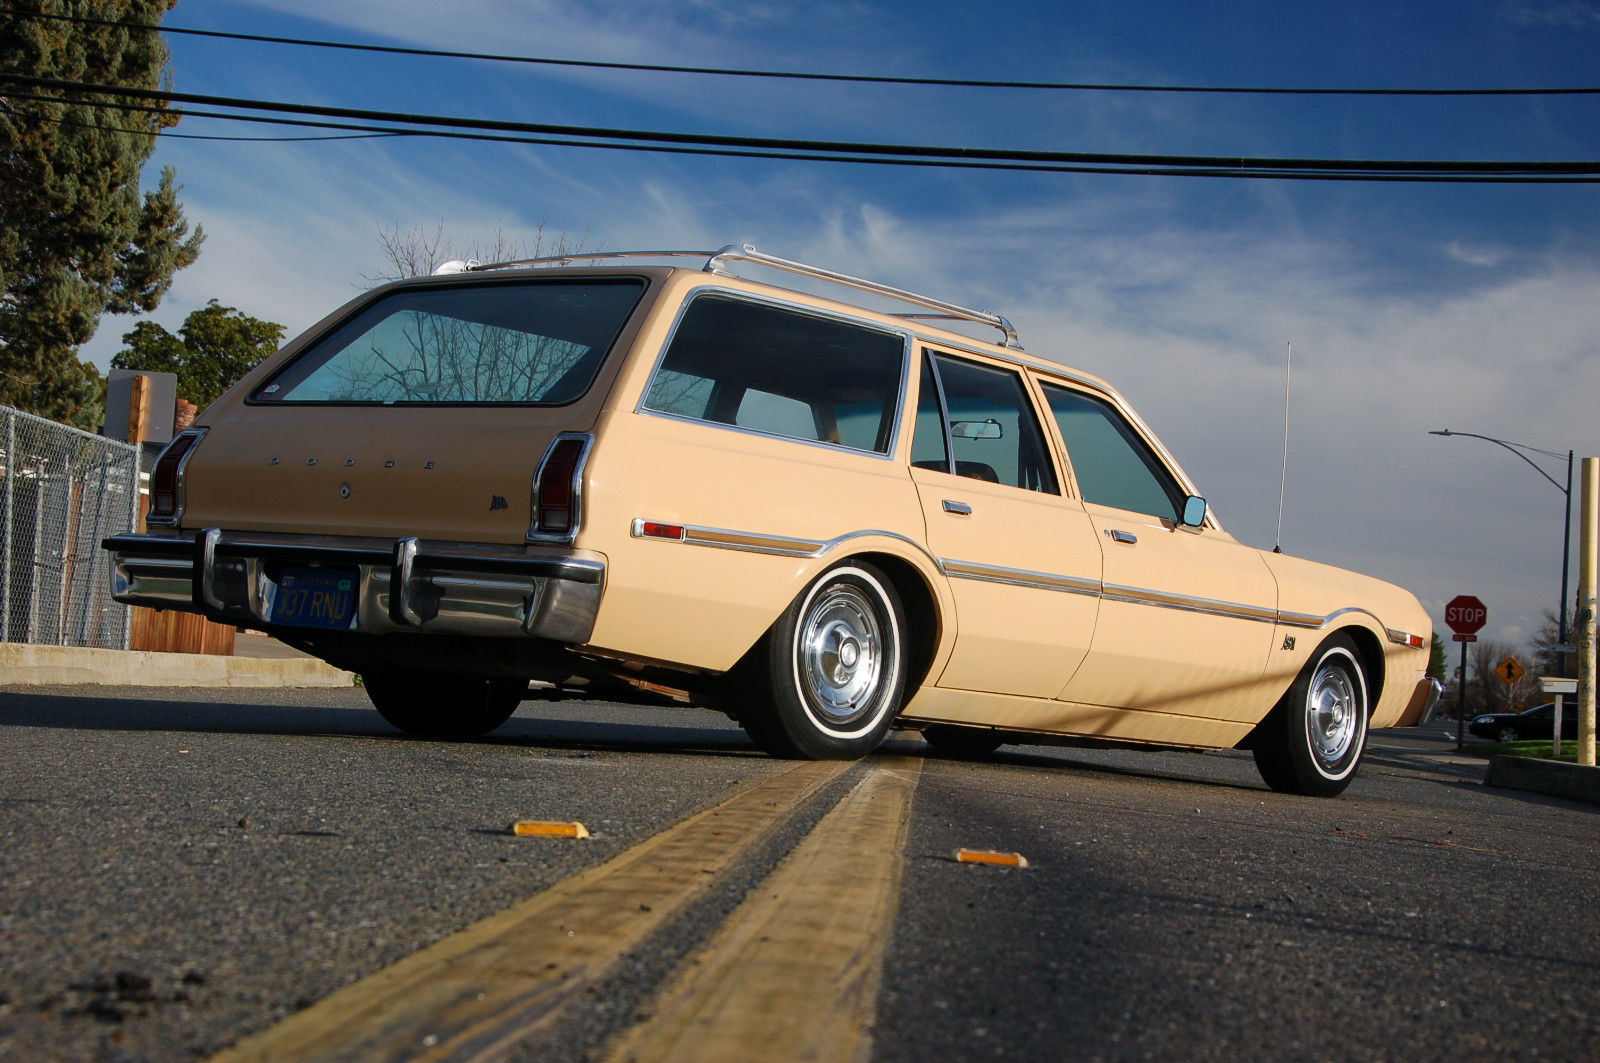 Low Life: This Lowered 1977 Dodge Aspen Wagon Has Potential Written All Over It!